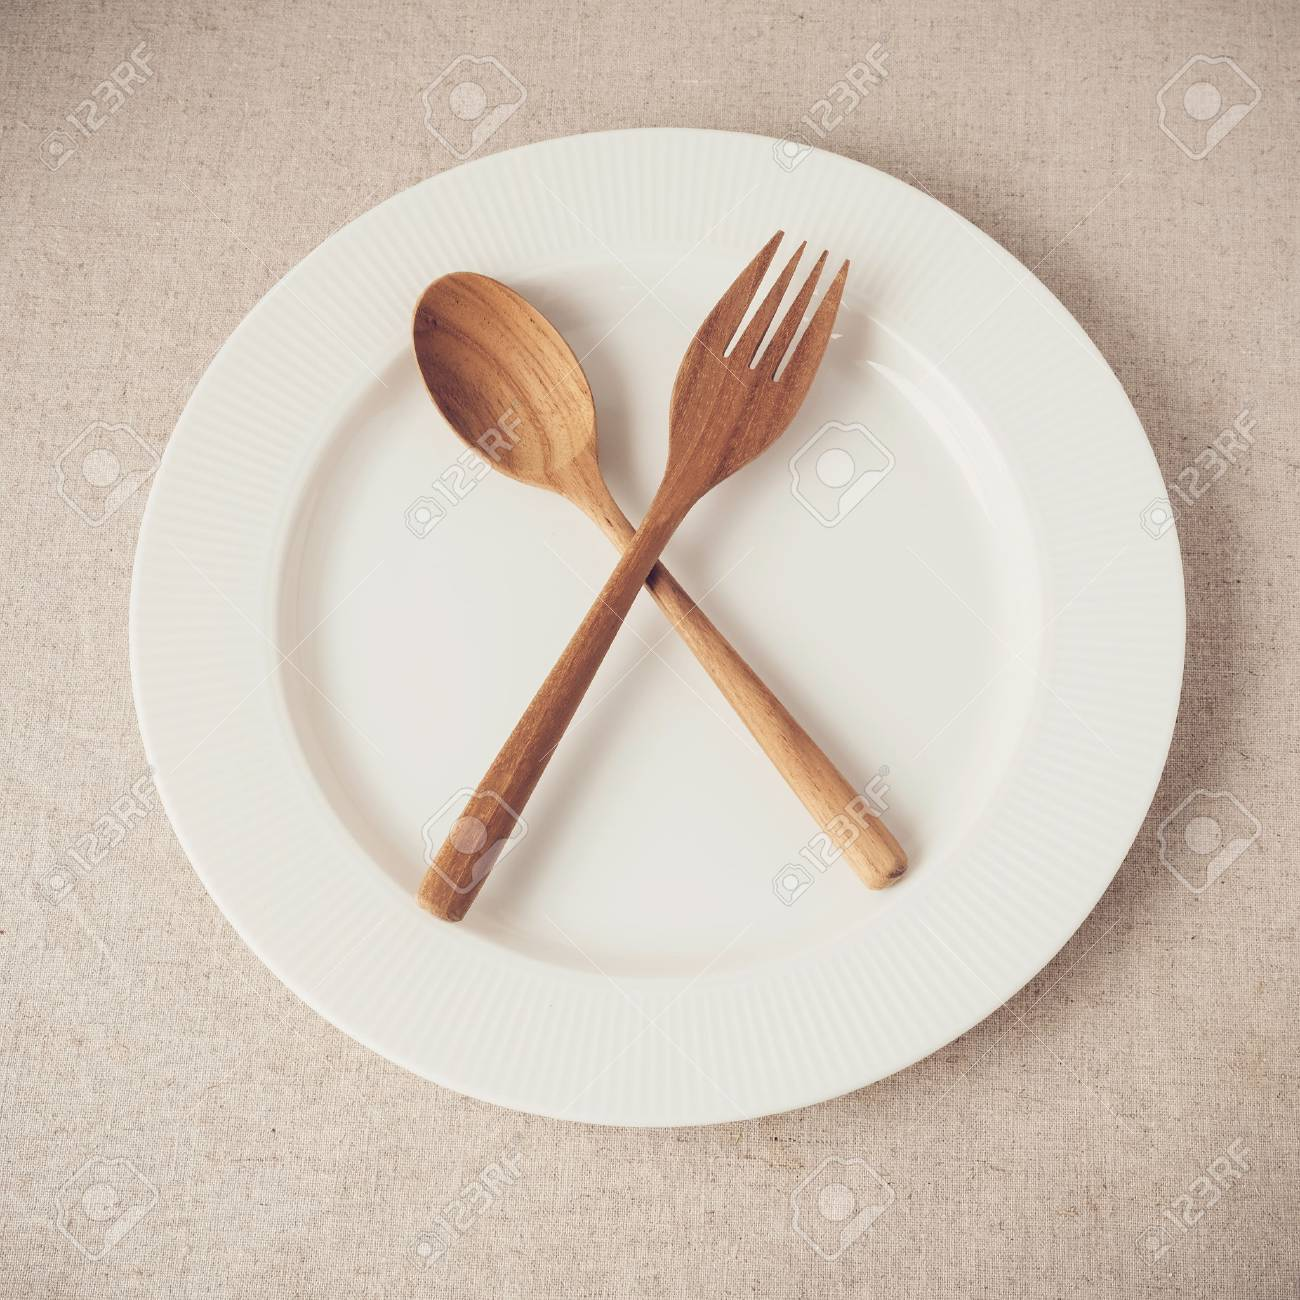 white plate with spoon and fork, Intermittent fasting concept,